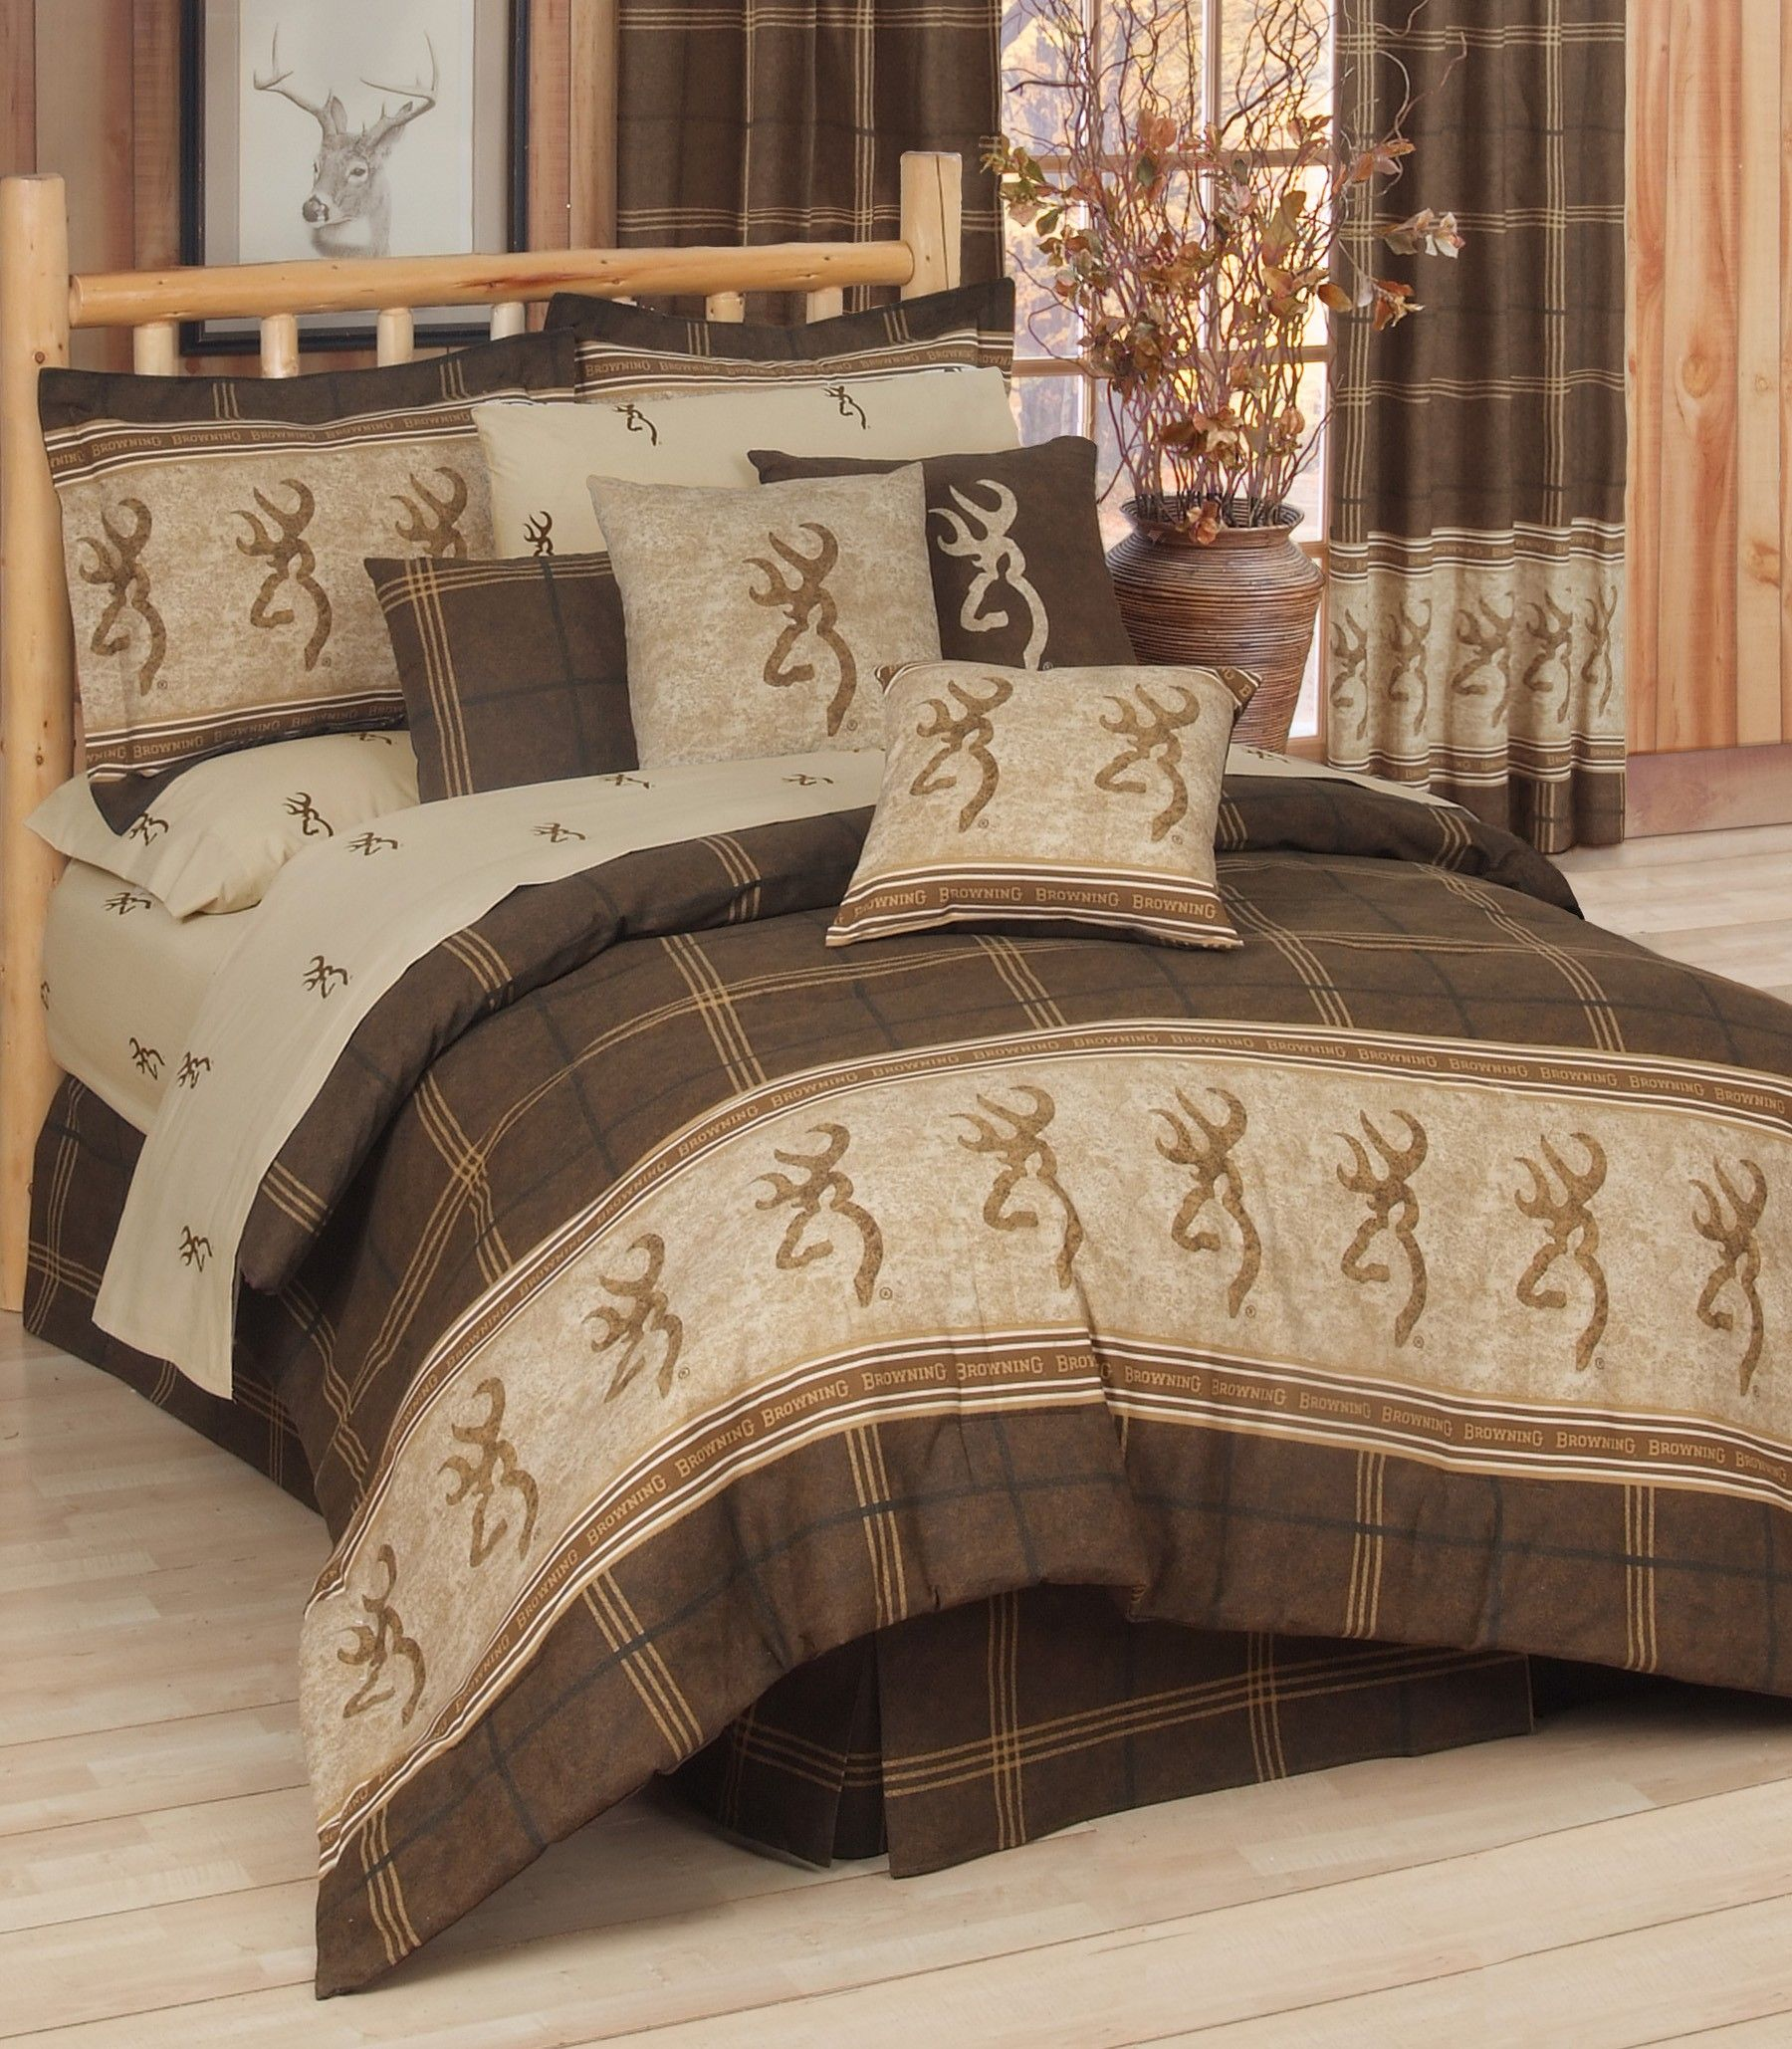 Browning s new Buckmark Bedding Love it